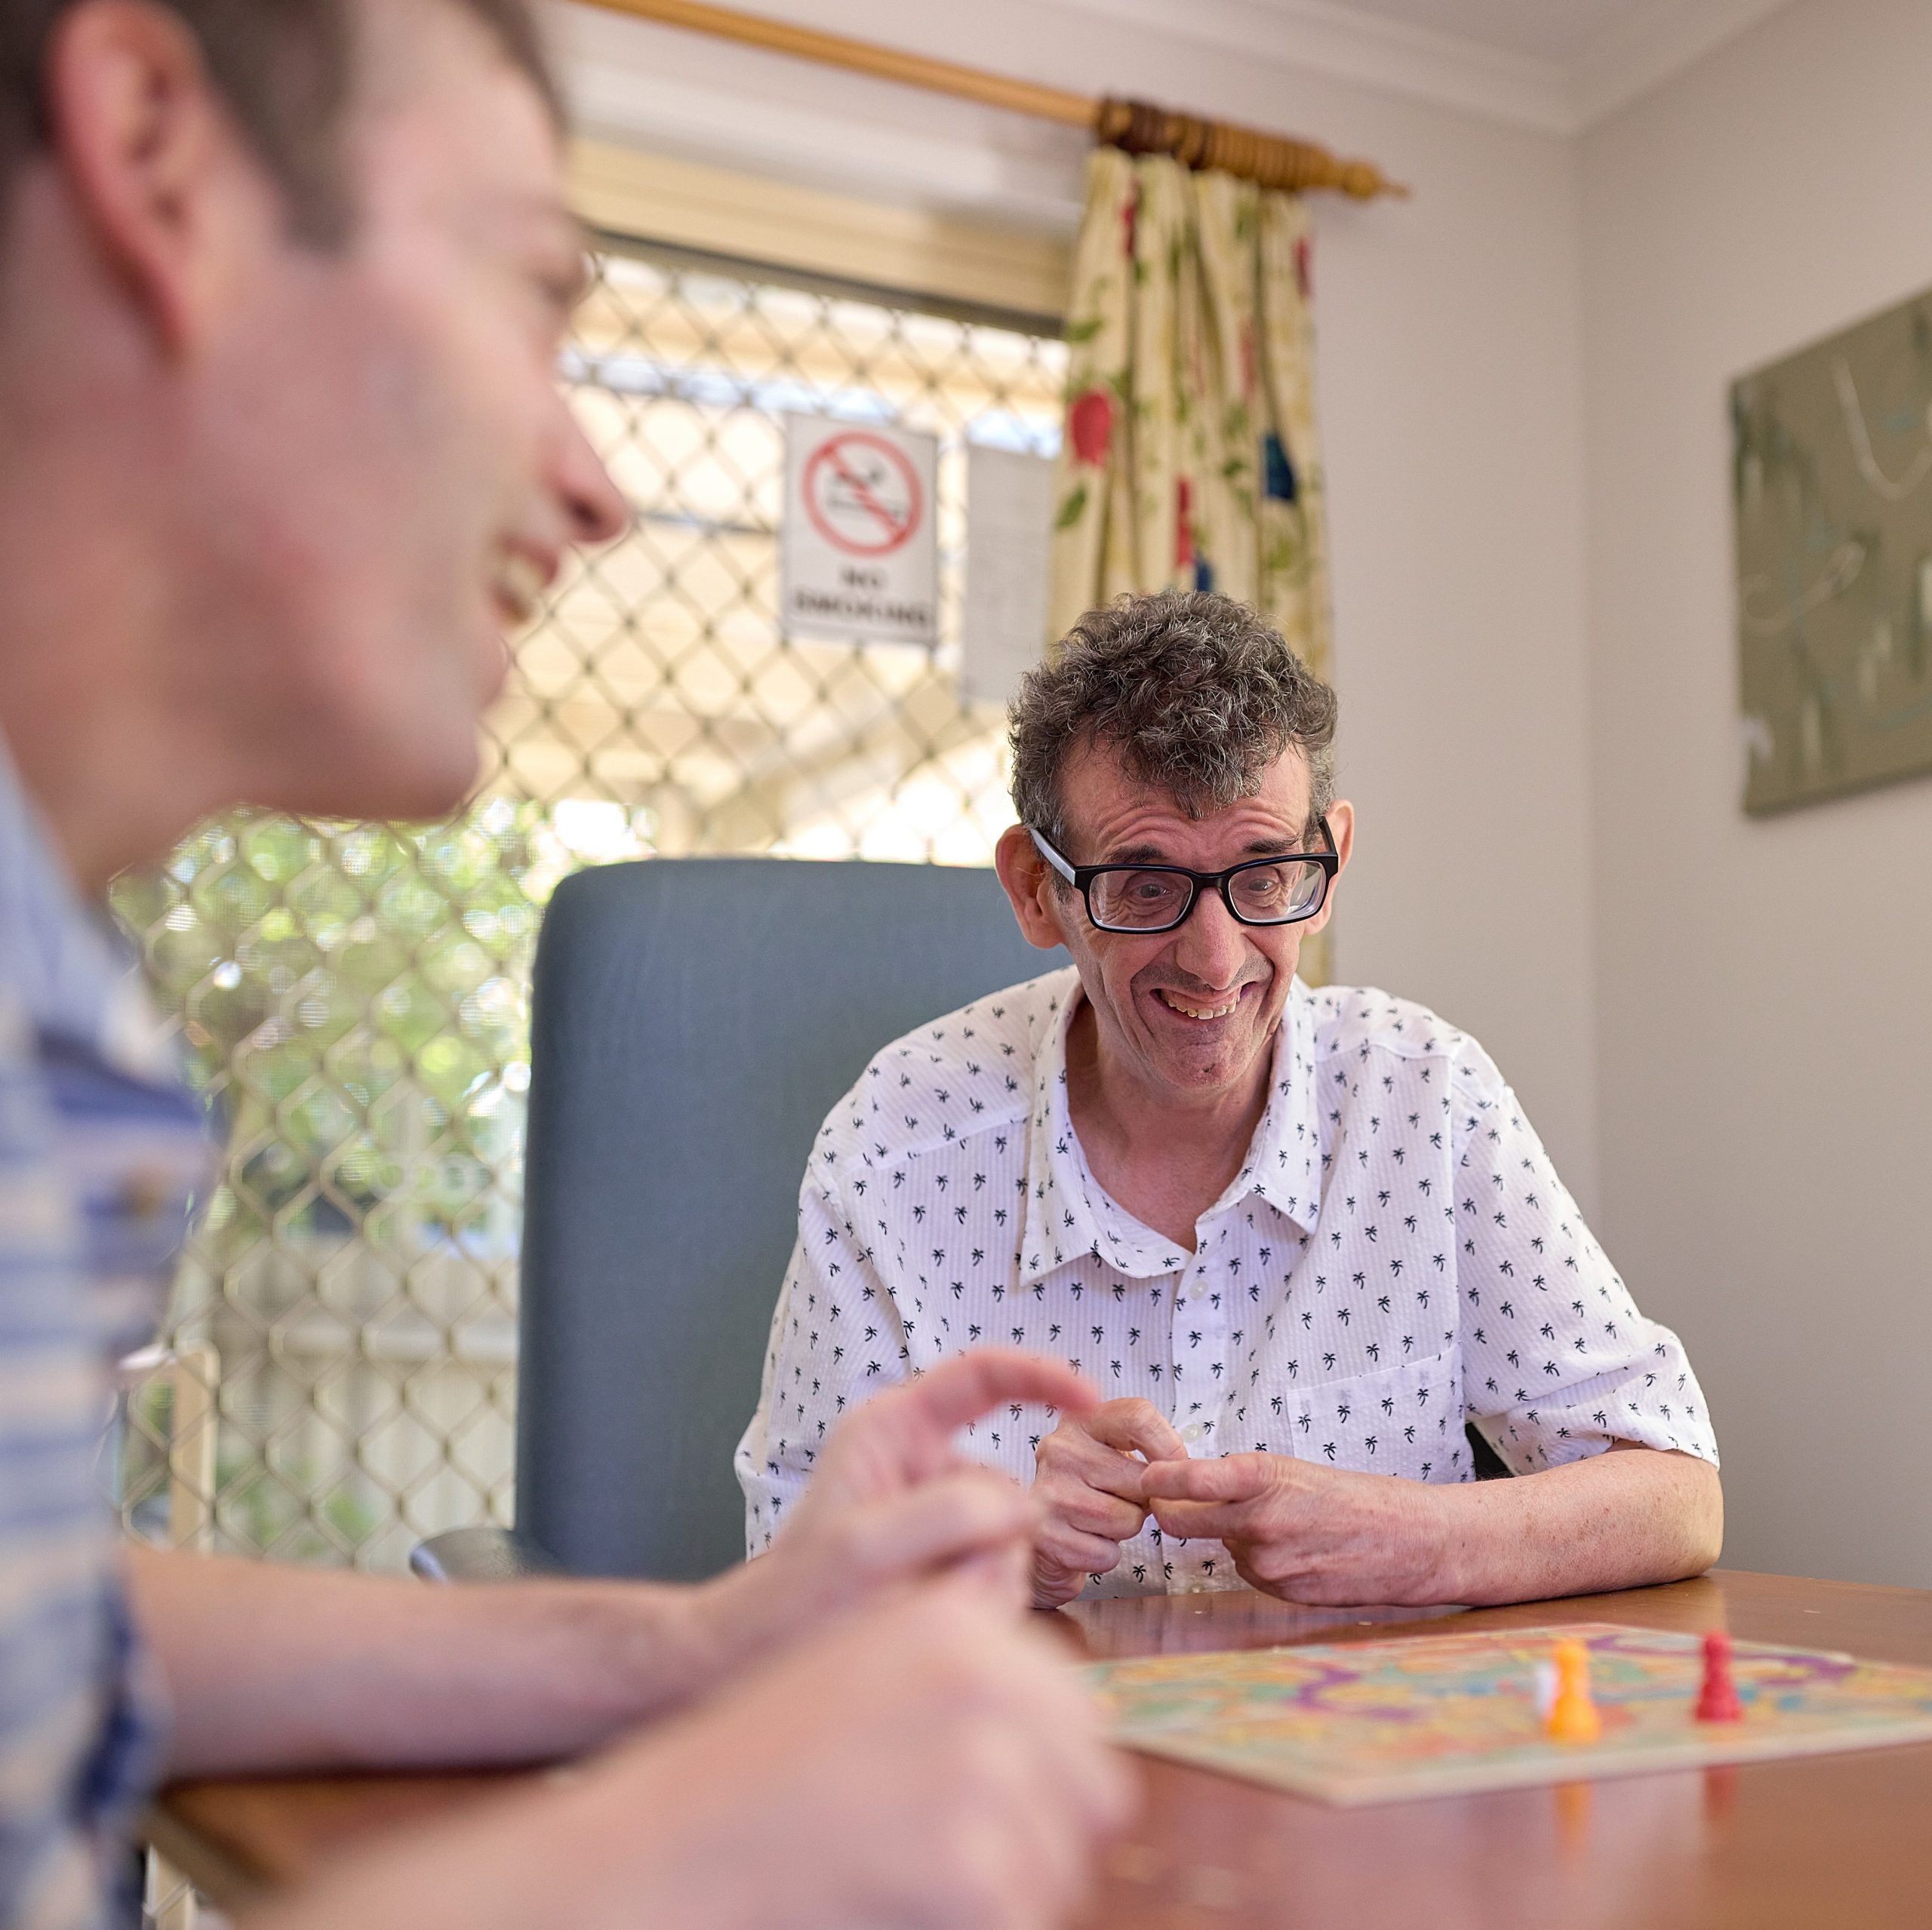 A man in a striped polo shirt playing the game of life board game